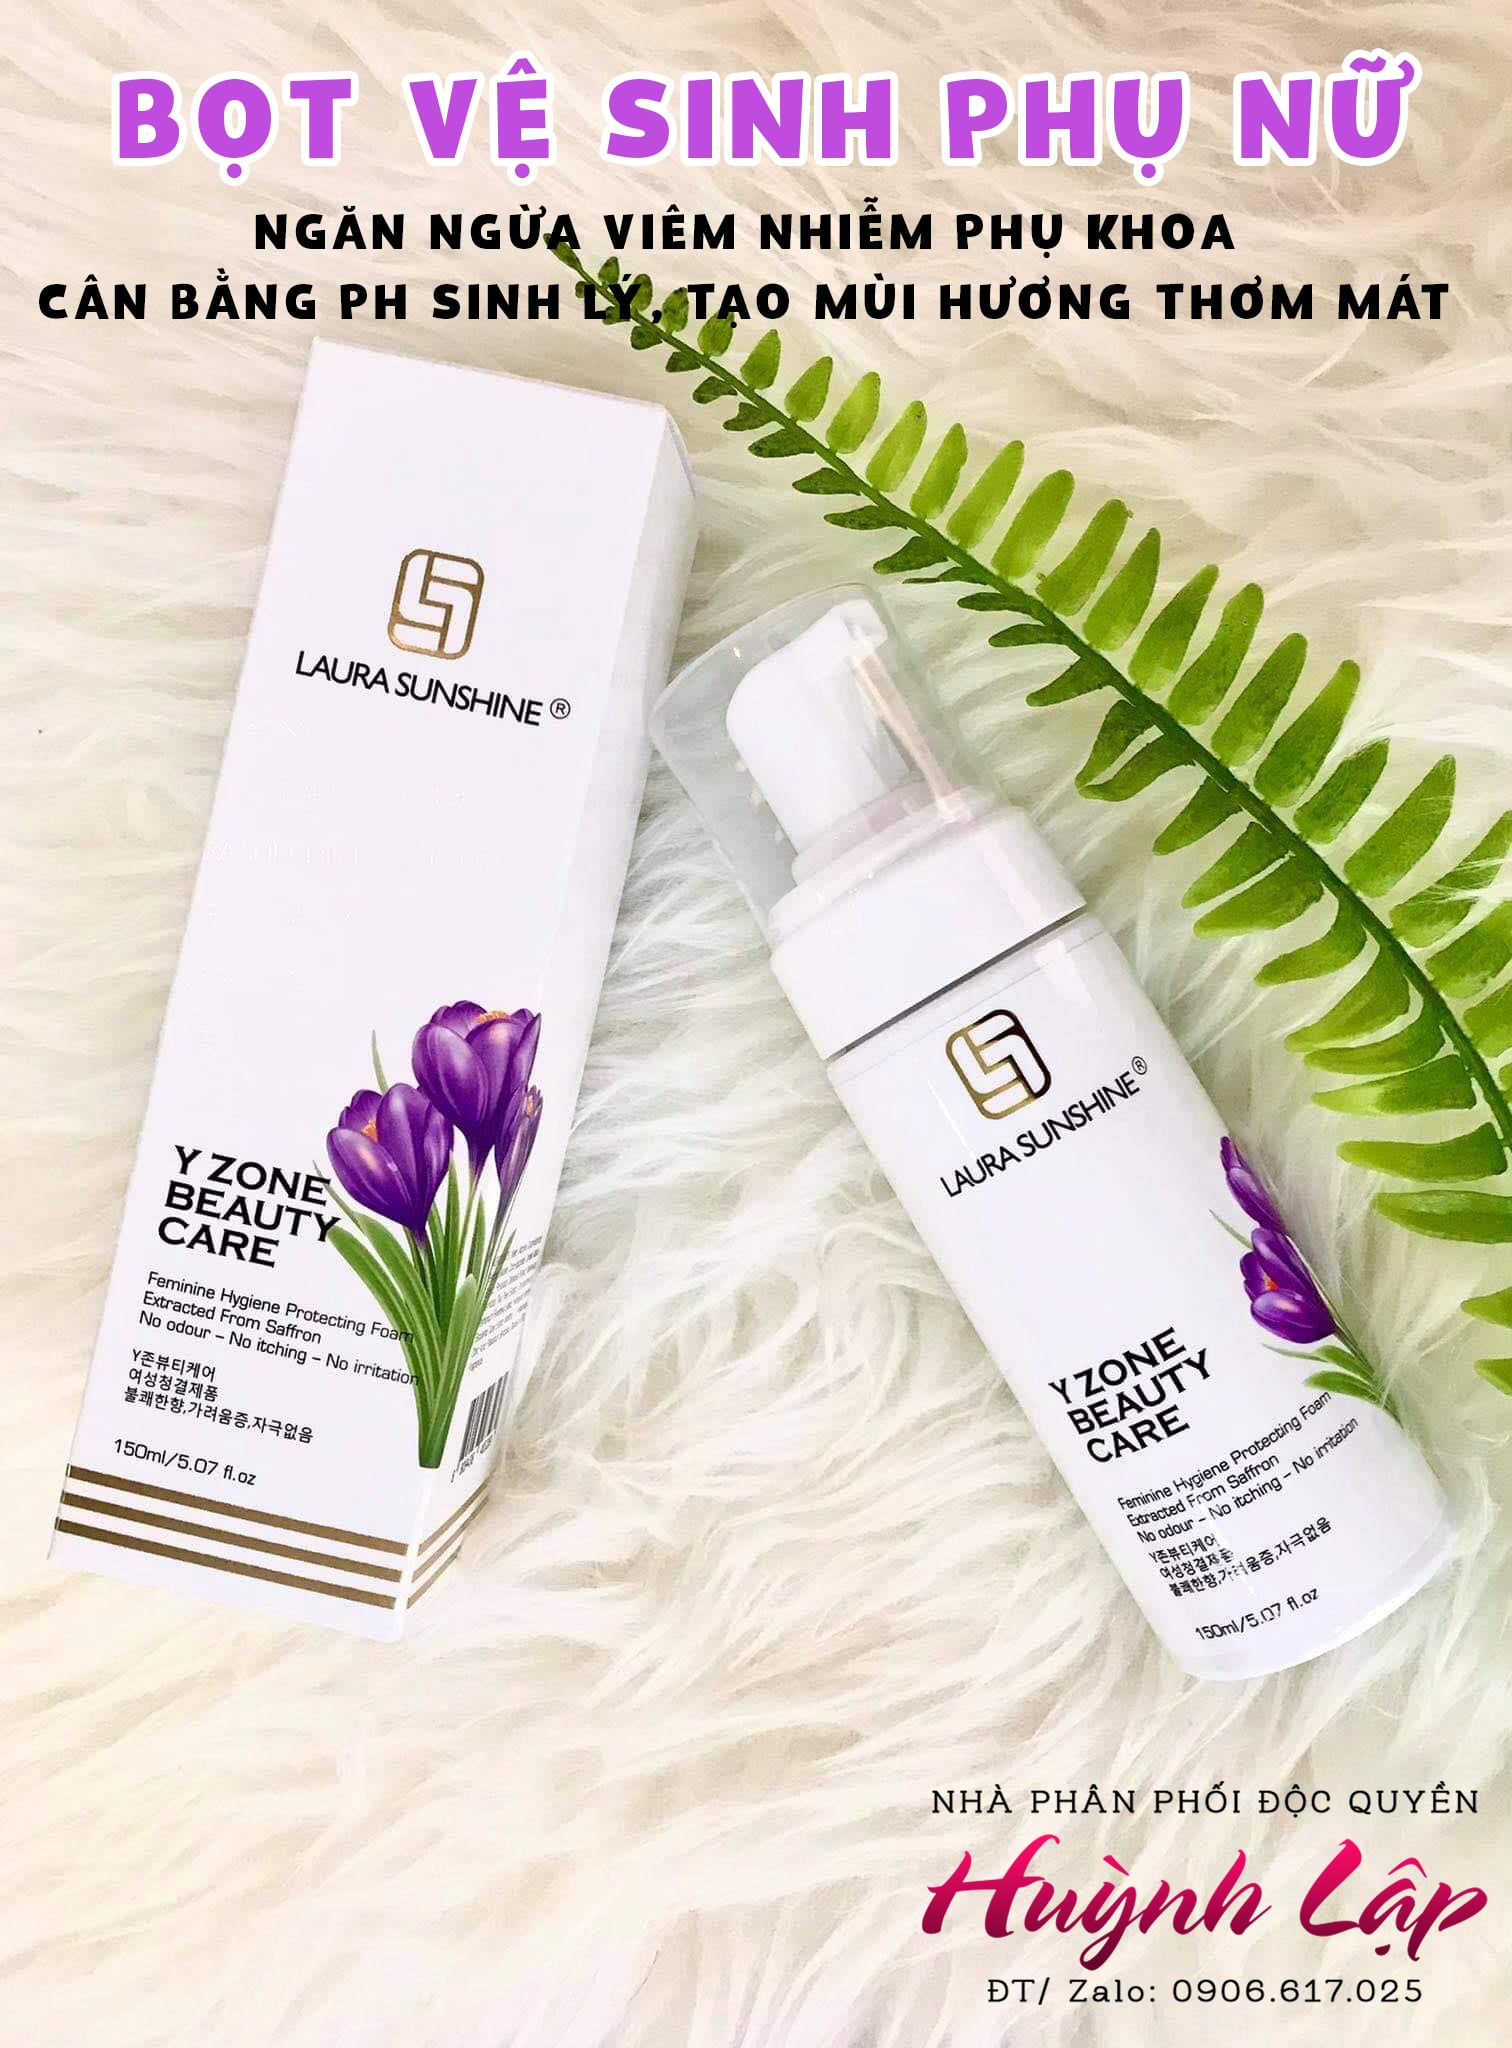 Y ZONE BEAUTY CARE - BỌT VỆ SINH PHỤ NỮ | LAURA SUNSHINE